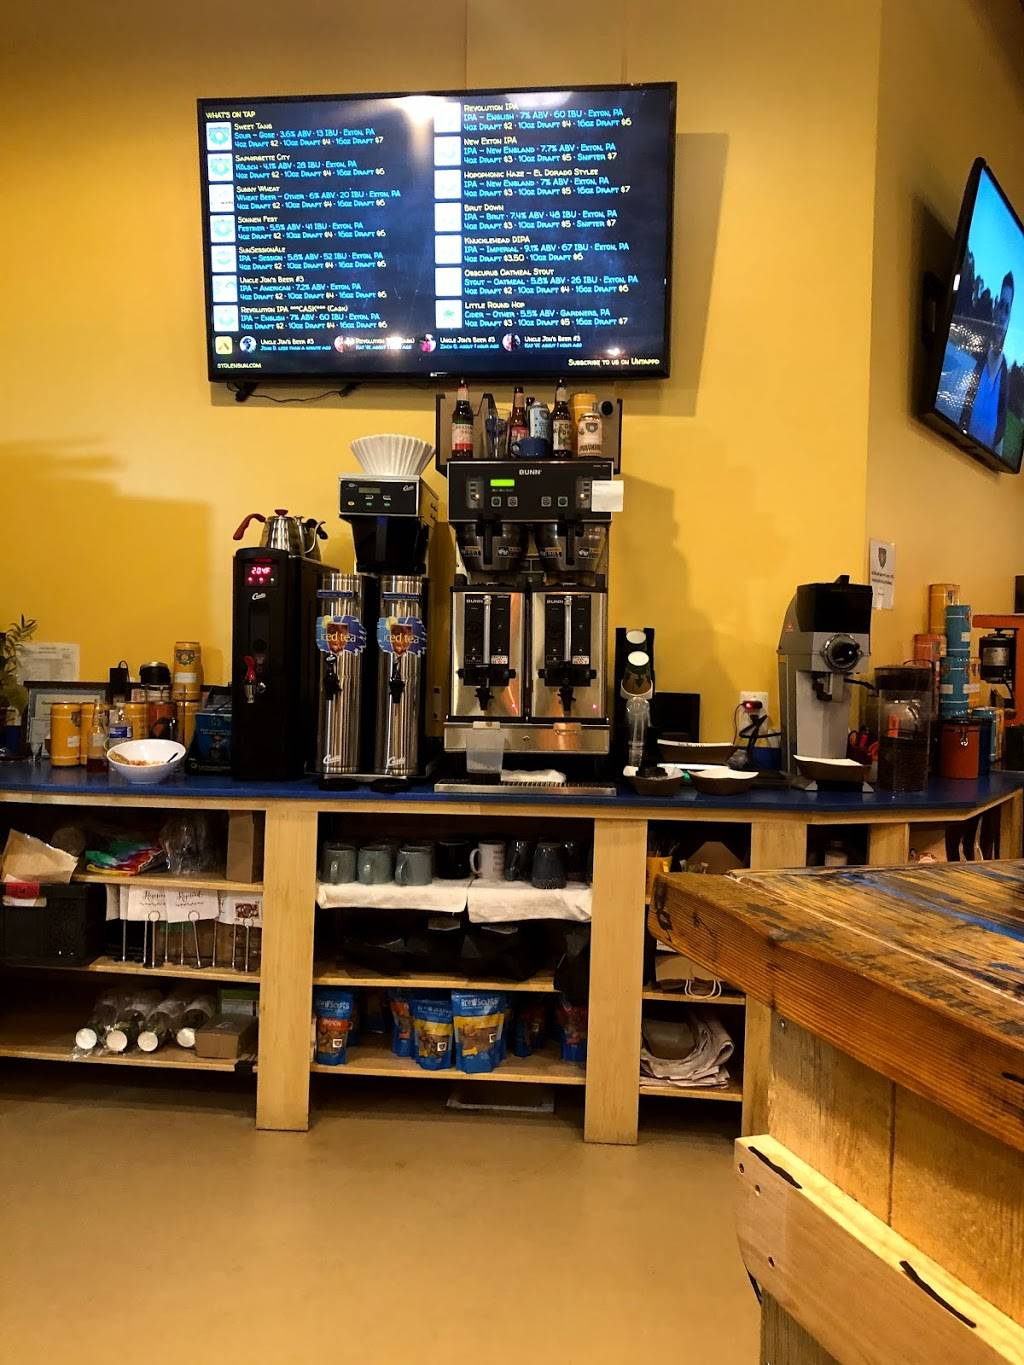 Stolen Sun Craft Brewing and Roasting Company   cafe   342 Pottstown Pike Suite B, Exton, PA 19341, USA   4848794161 OR +1 484-879-4161